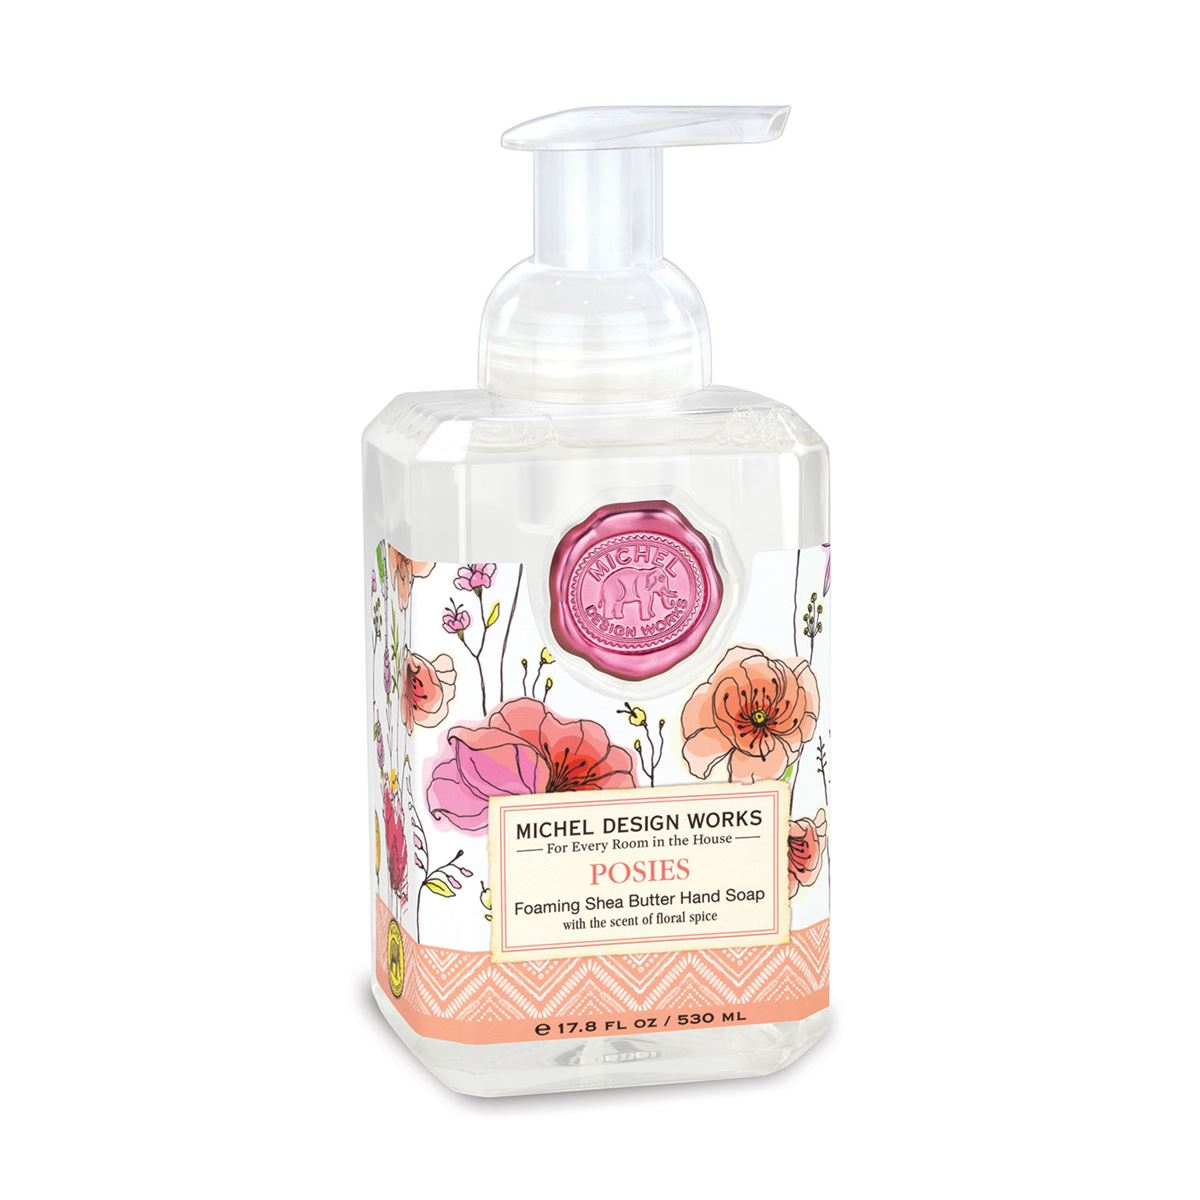 The spicy floral of Posies features tuberose and bergamot with splashes of freesia, rose, and cognac. The generous size of this foaming hand soap proves you can offer great value without sacrificing quality. Plus it contains luxurious shea butter and aloe vera for gentle cleansing and moisturizing.